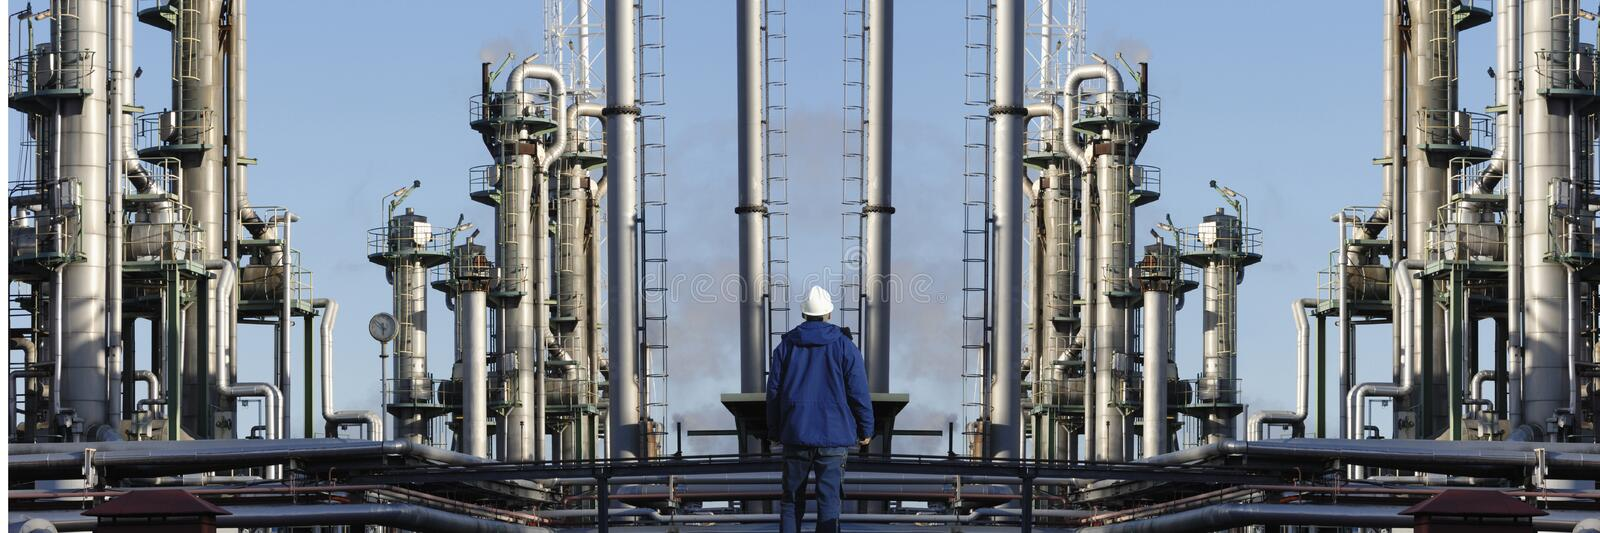 Oil worker and oil refinery industry. Oil and gas worker standing in front of large refinery installation, panoramic perspective royalty free stock photography